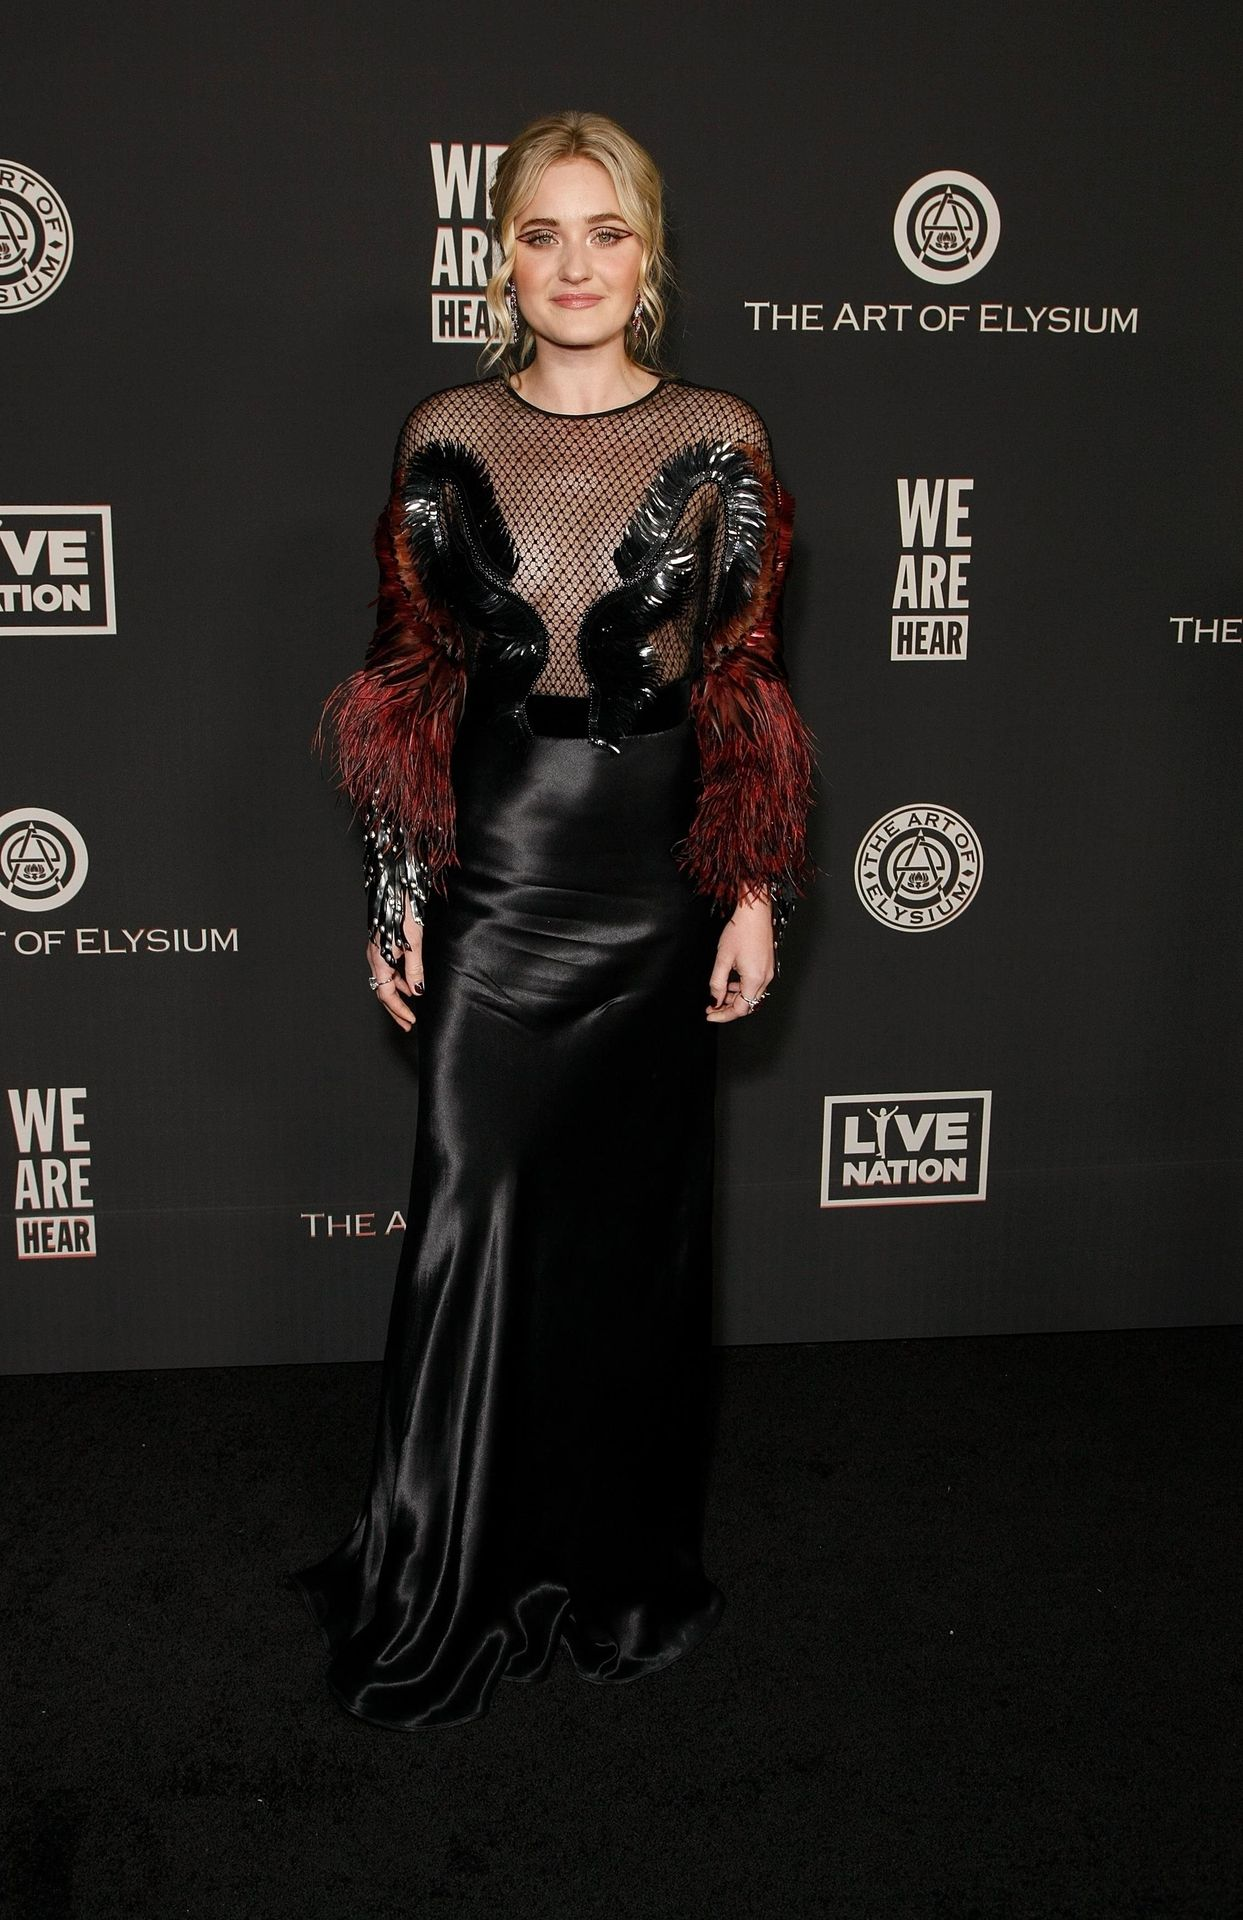 Aj Michalka Shows Her Tits At The Art Of Elysium's Event 0008